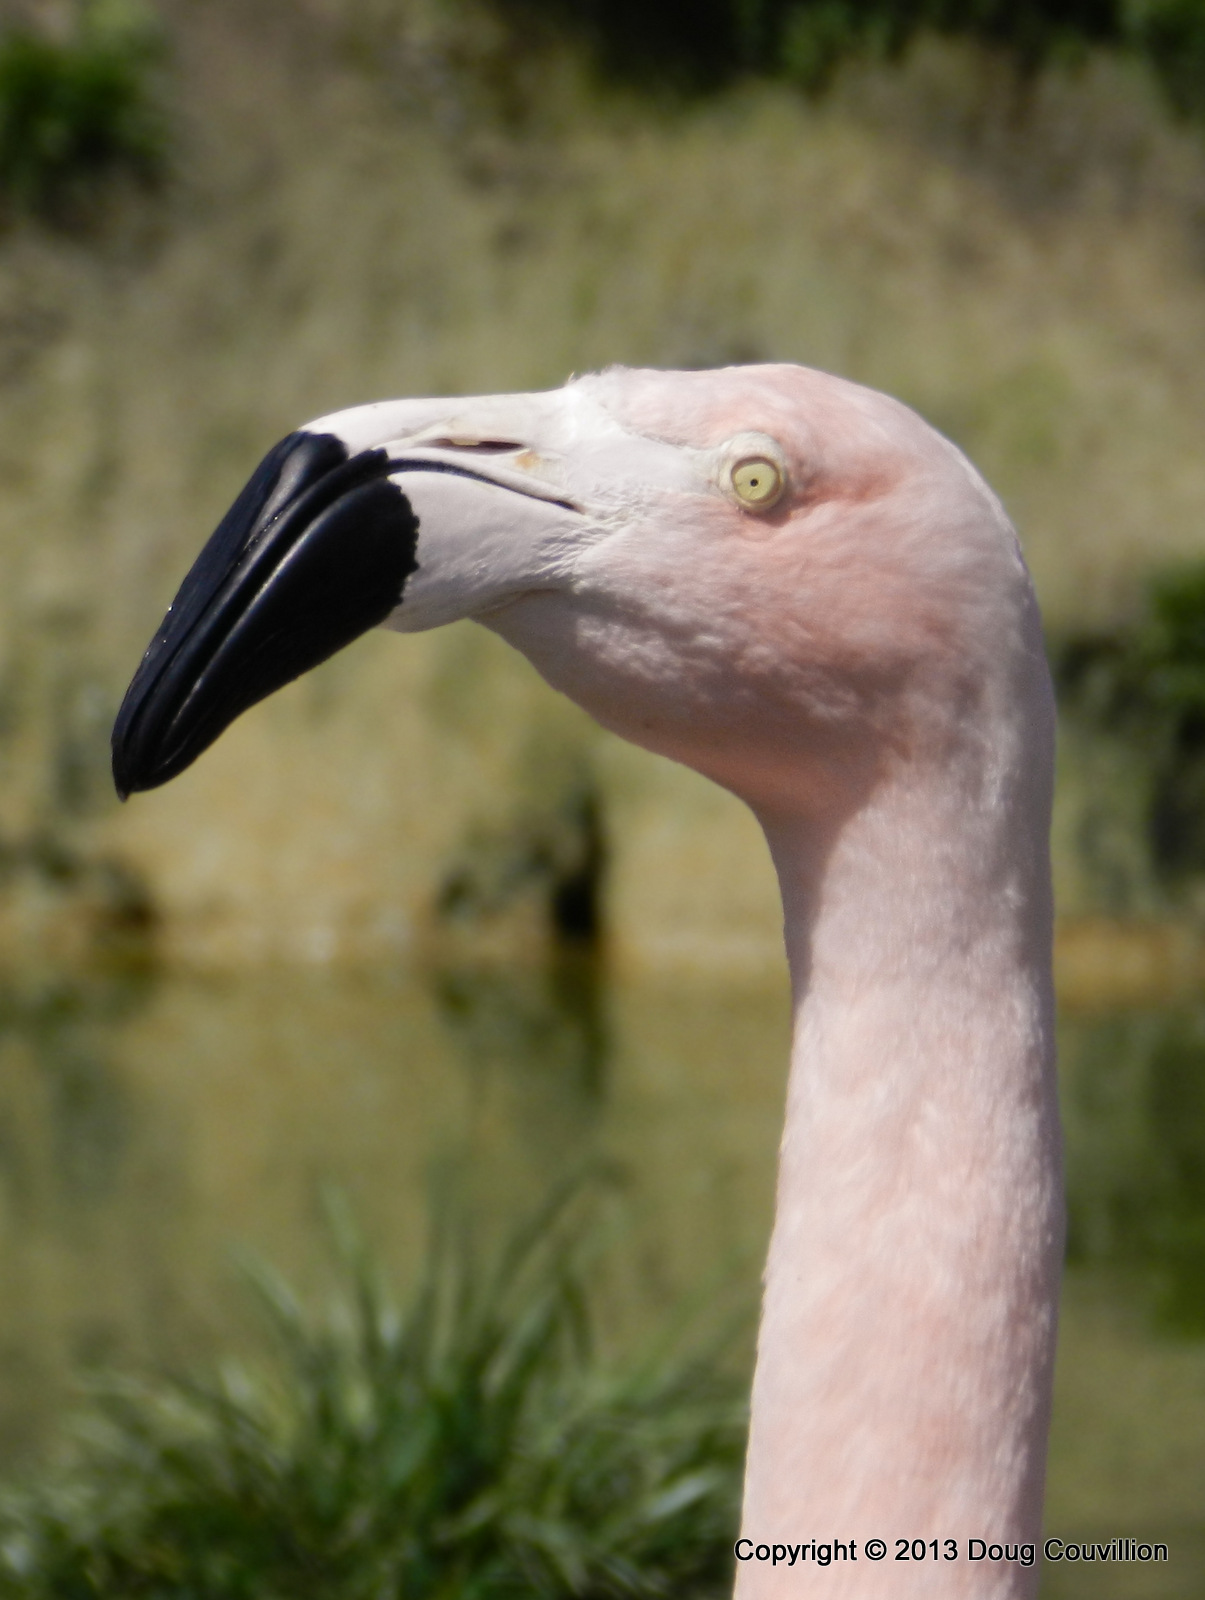 photograph of a flamingo